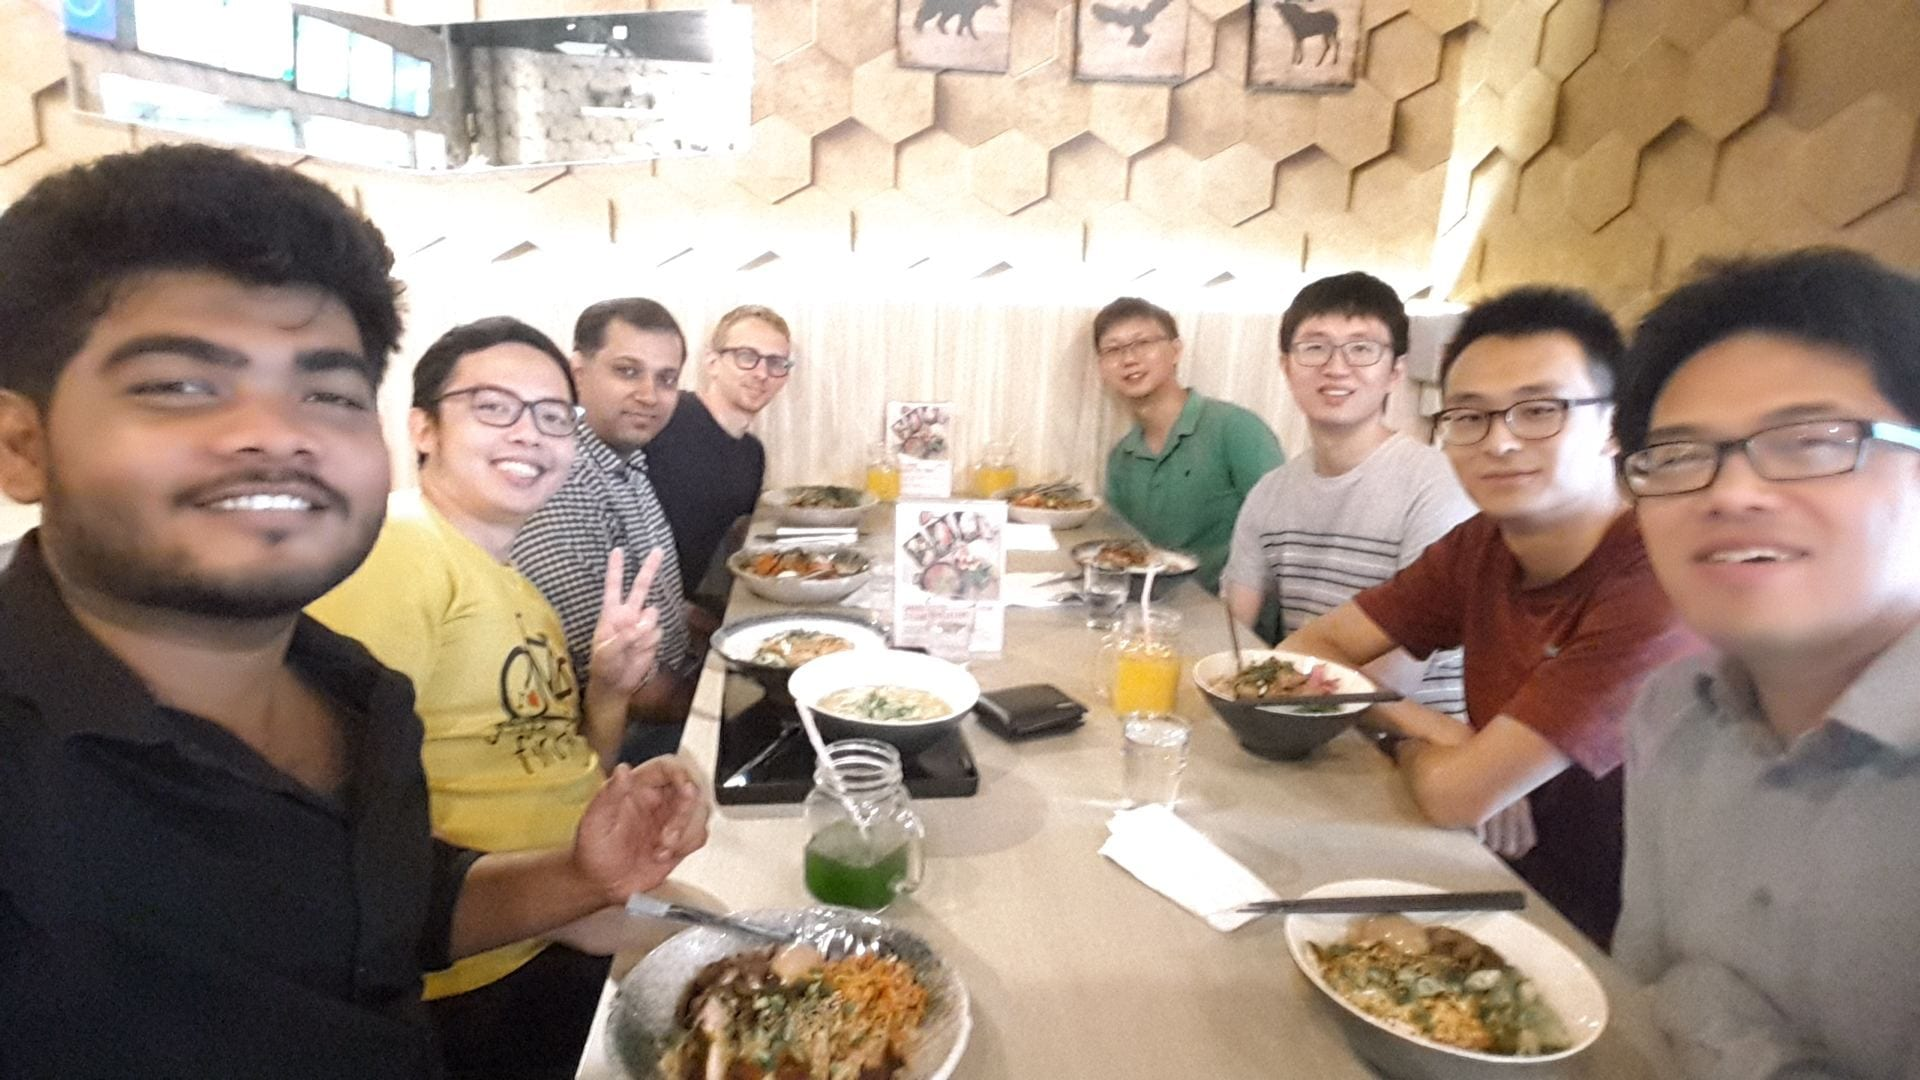 Group lunch. Oct 2018.